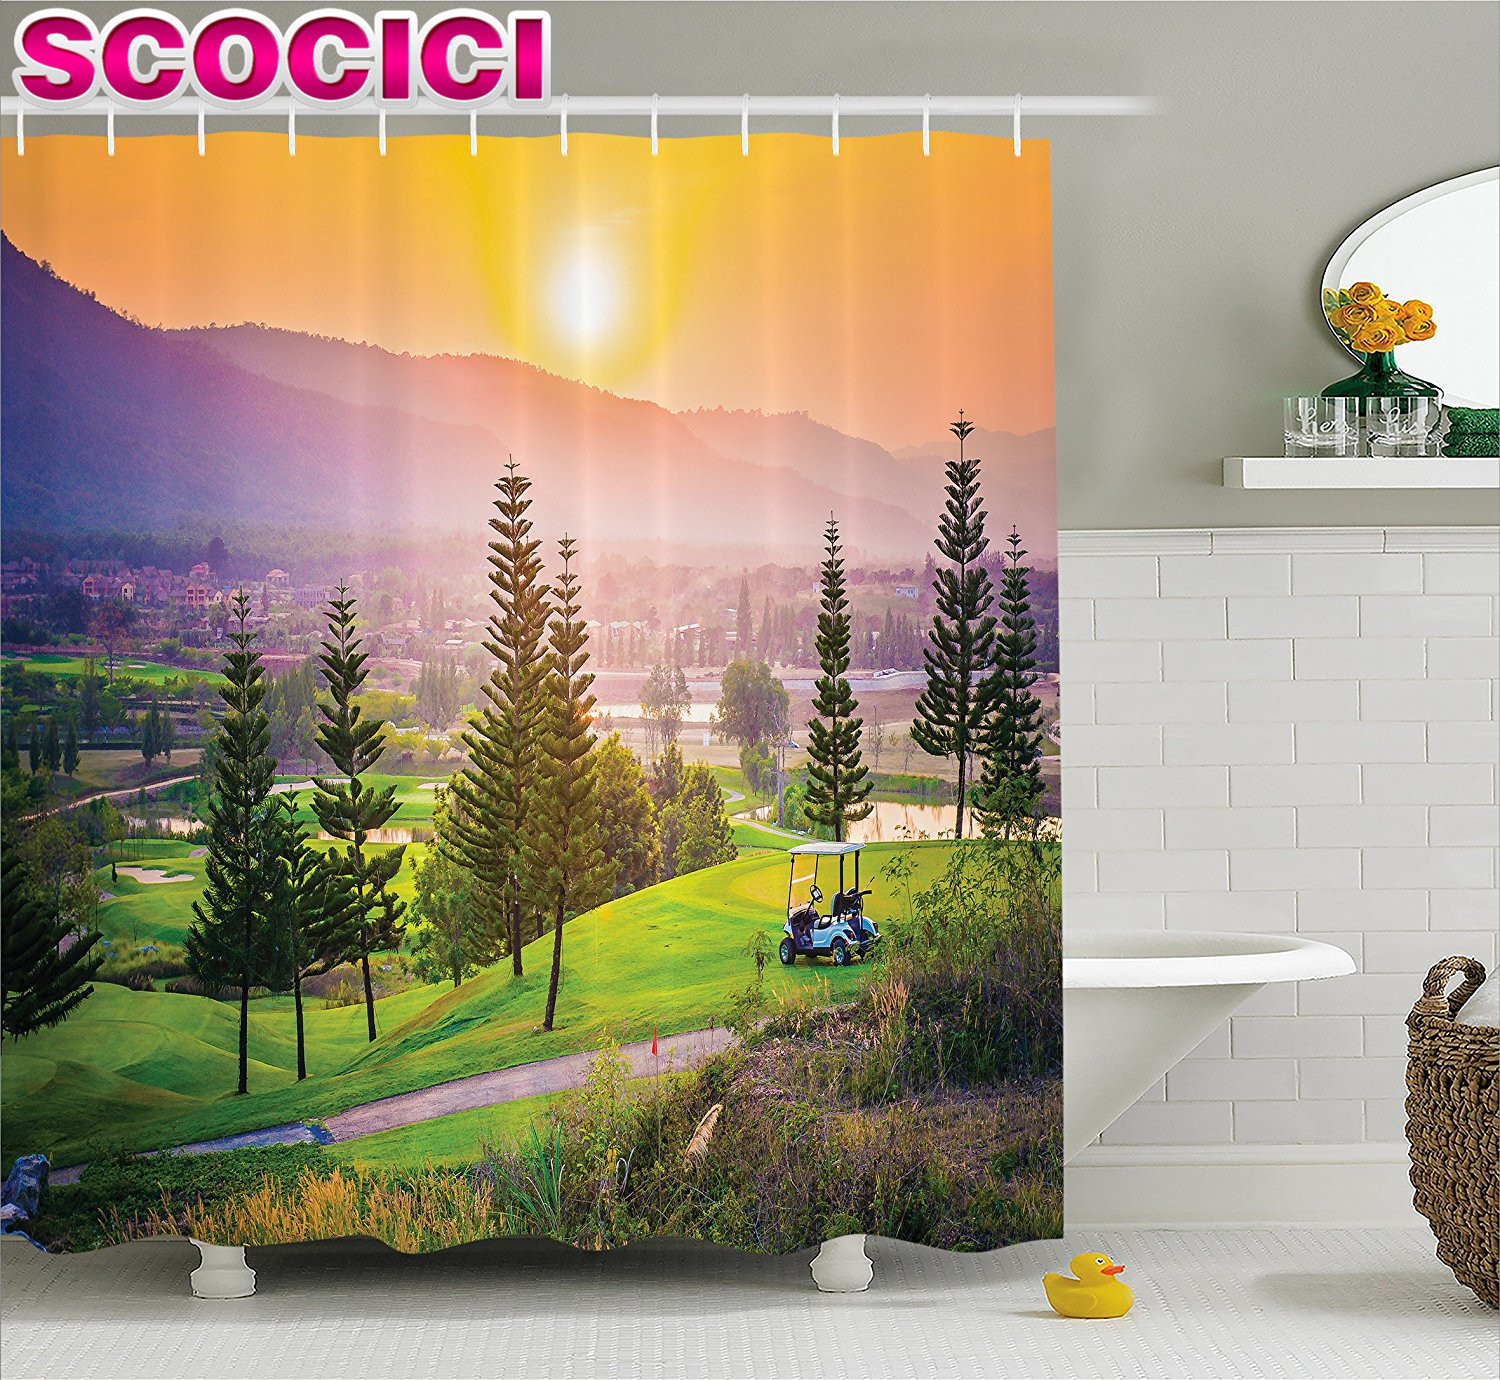 Farm House Decor Shower Curtain Vibrant Golf Resort Park In Spring Season With Trees Sunset Hills And Valley Fabric Bathroom Dec